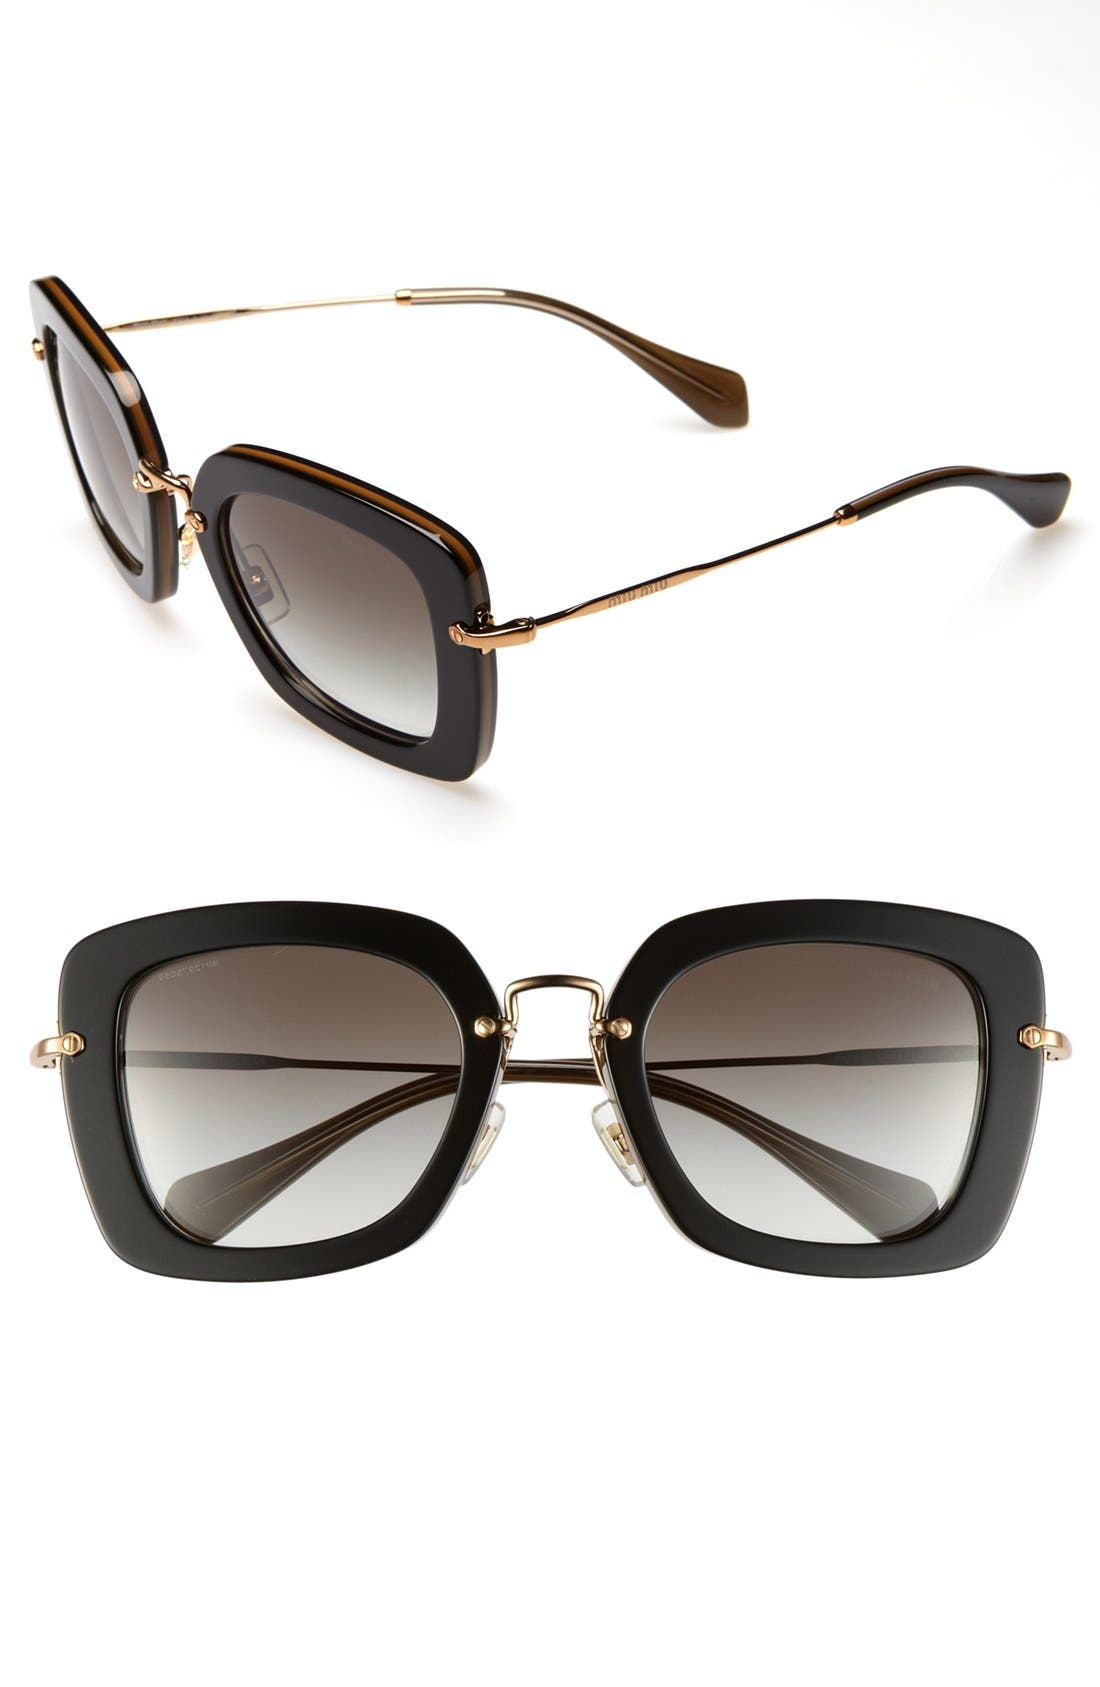 Alternate Image 1 Selected - Miu Miu 52mm Retro Sunglasses